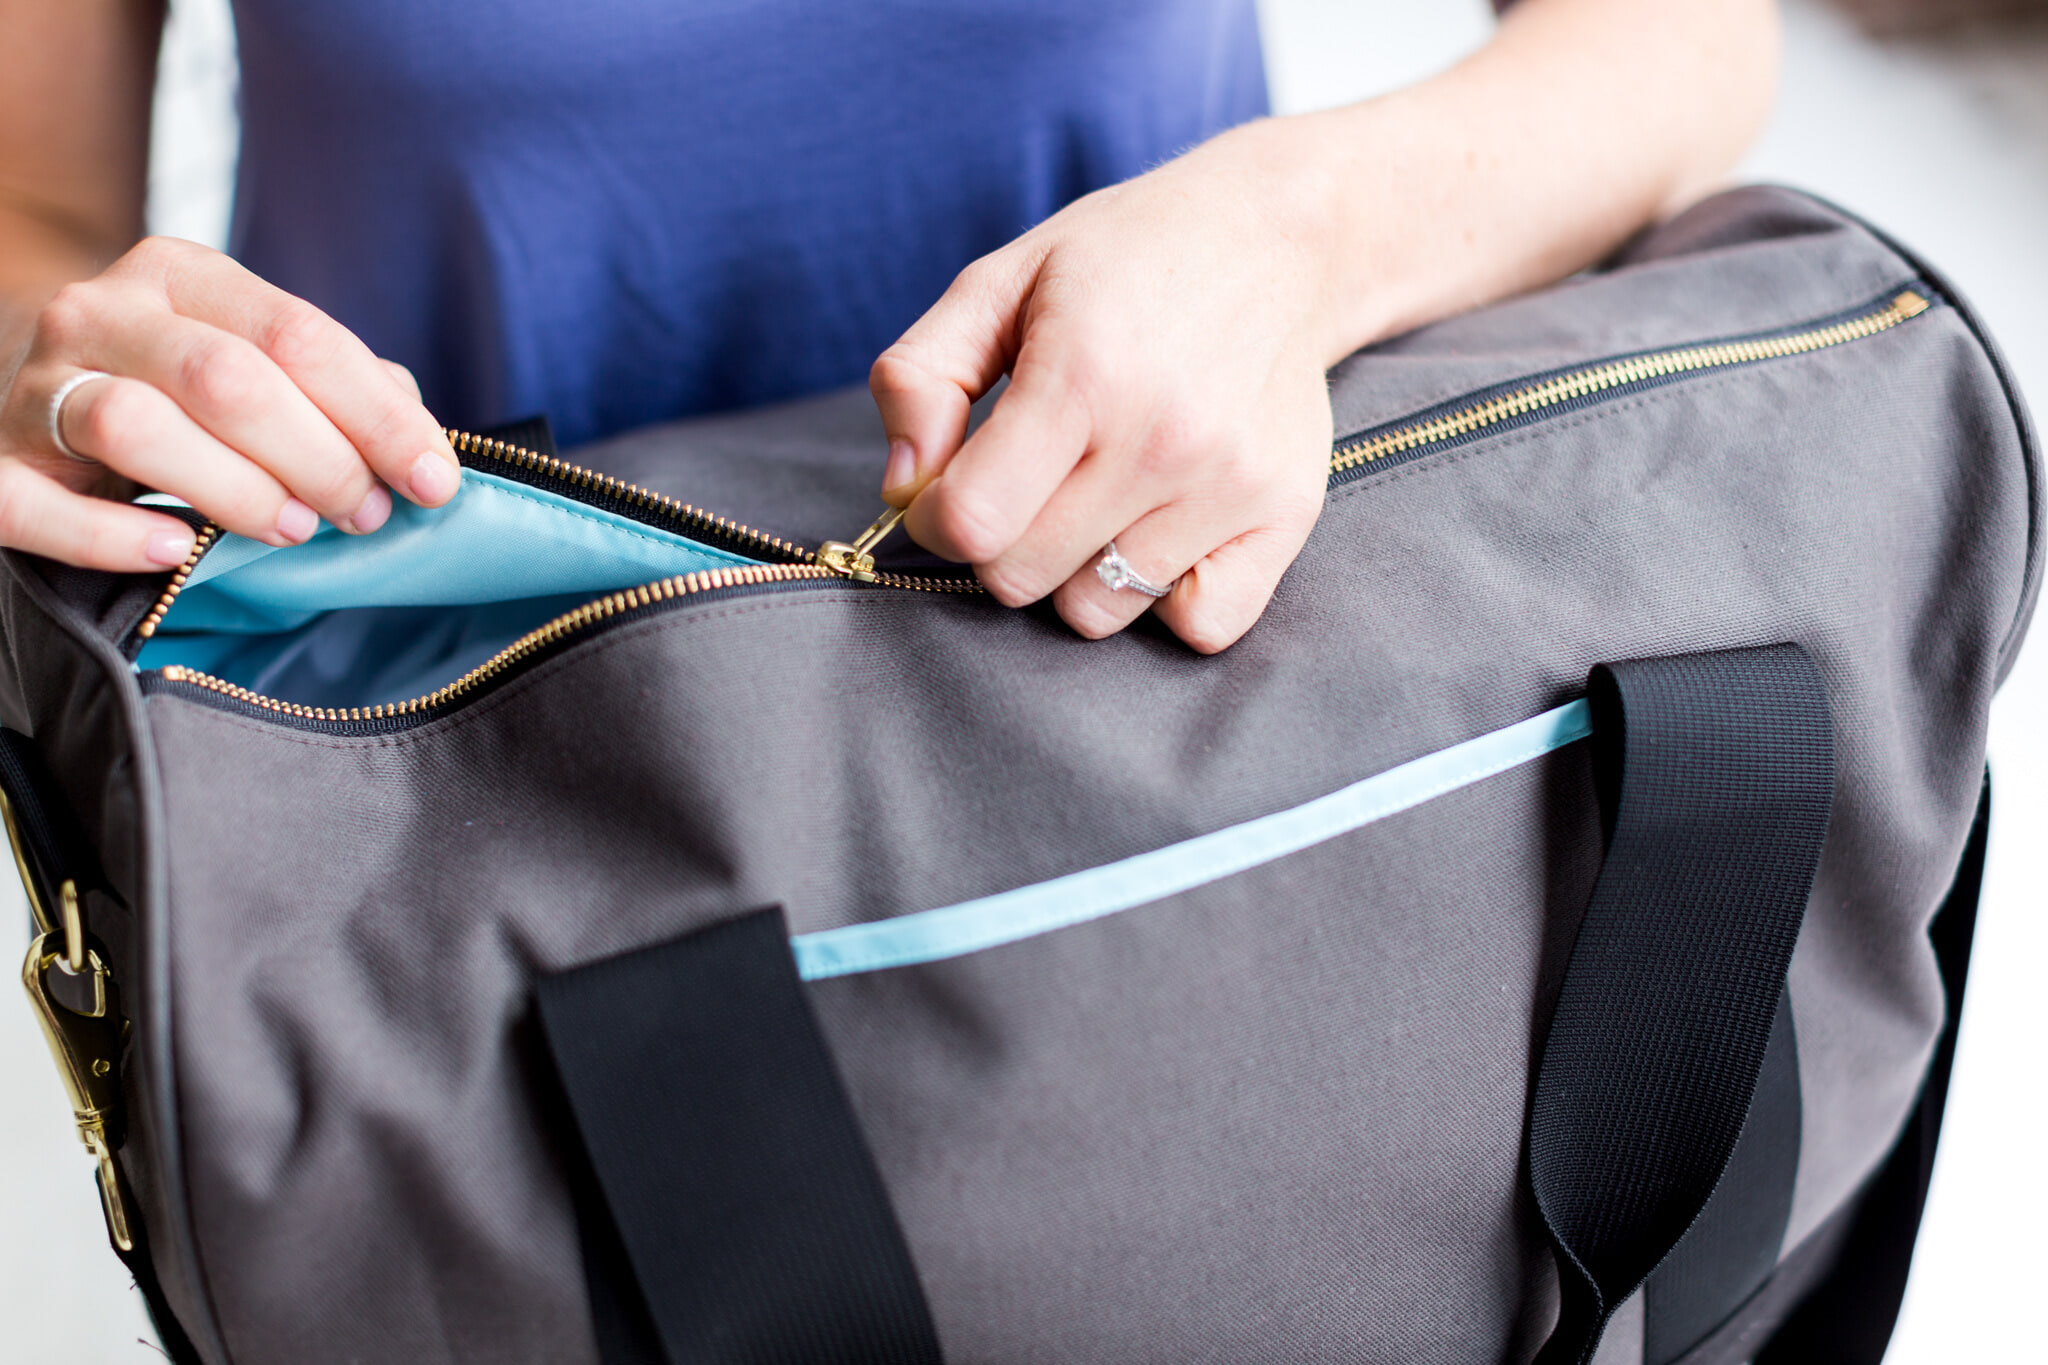 Gym essentials 7 things you should always have in your gym bag